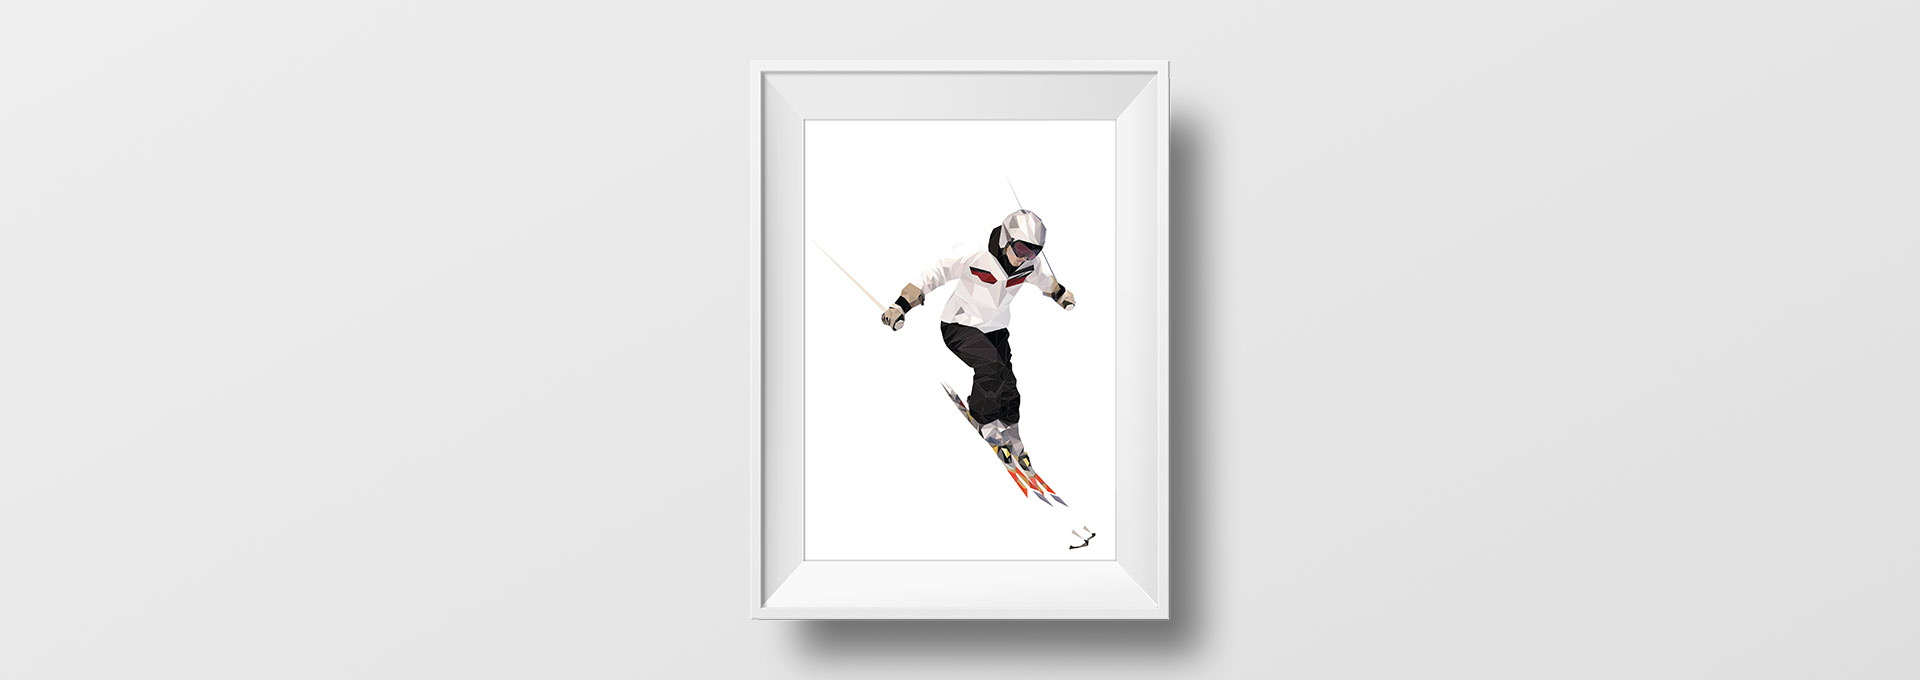 Affiche Low-poly skieur